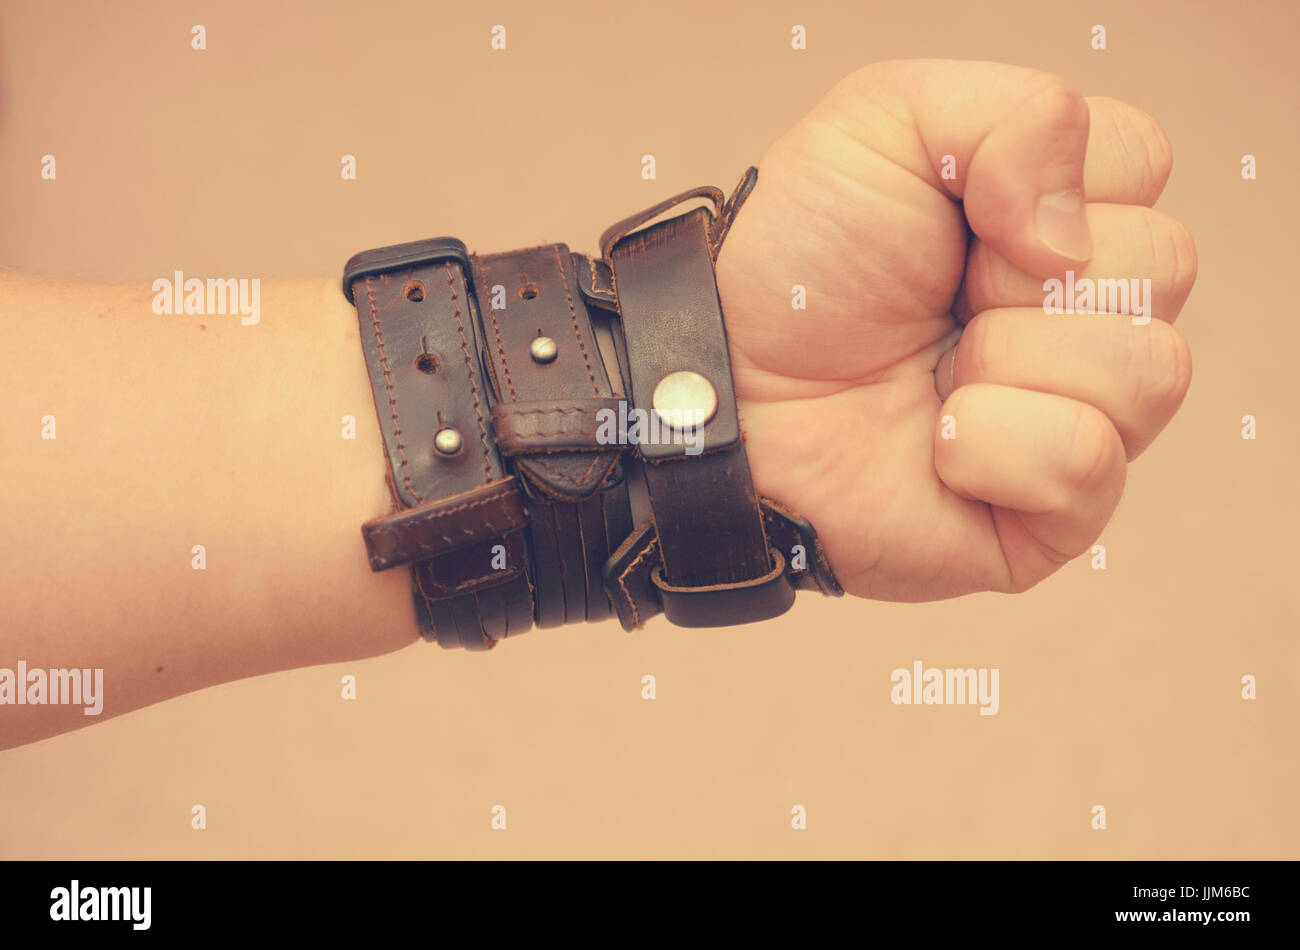 Modern fashionable leather and metal bracelets on the wrist - Stock Image